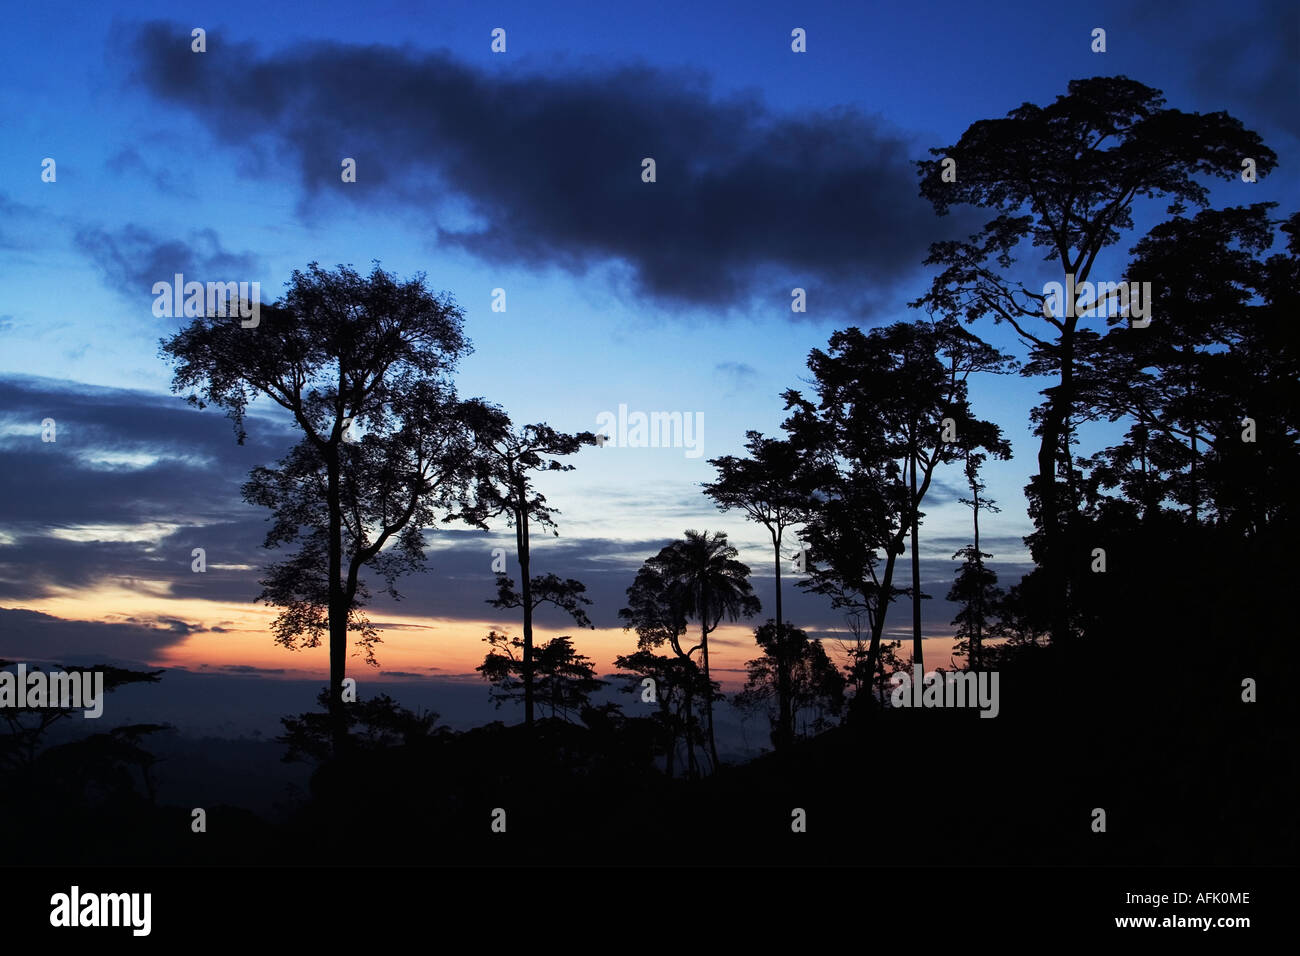 Dawn over African Tropical Rainforest with mist clearing, Ghana, West Africa - Stock Image